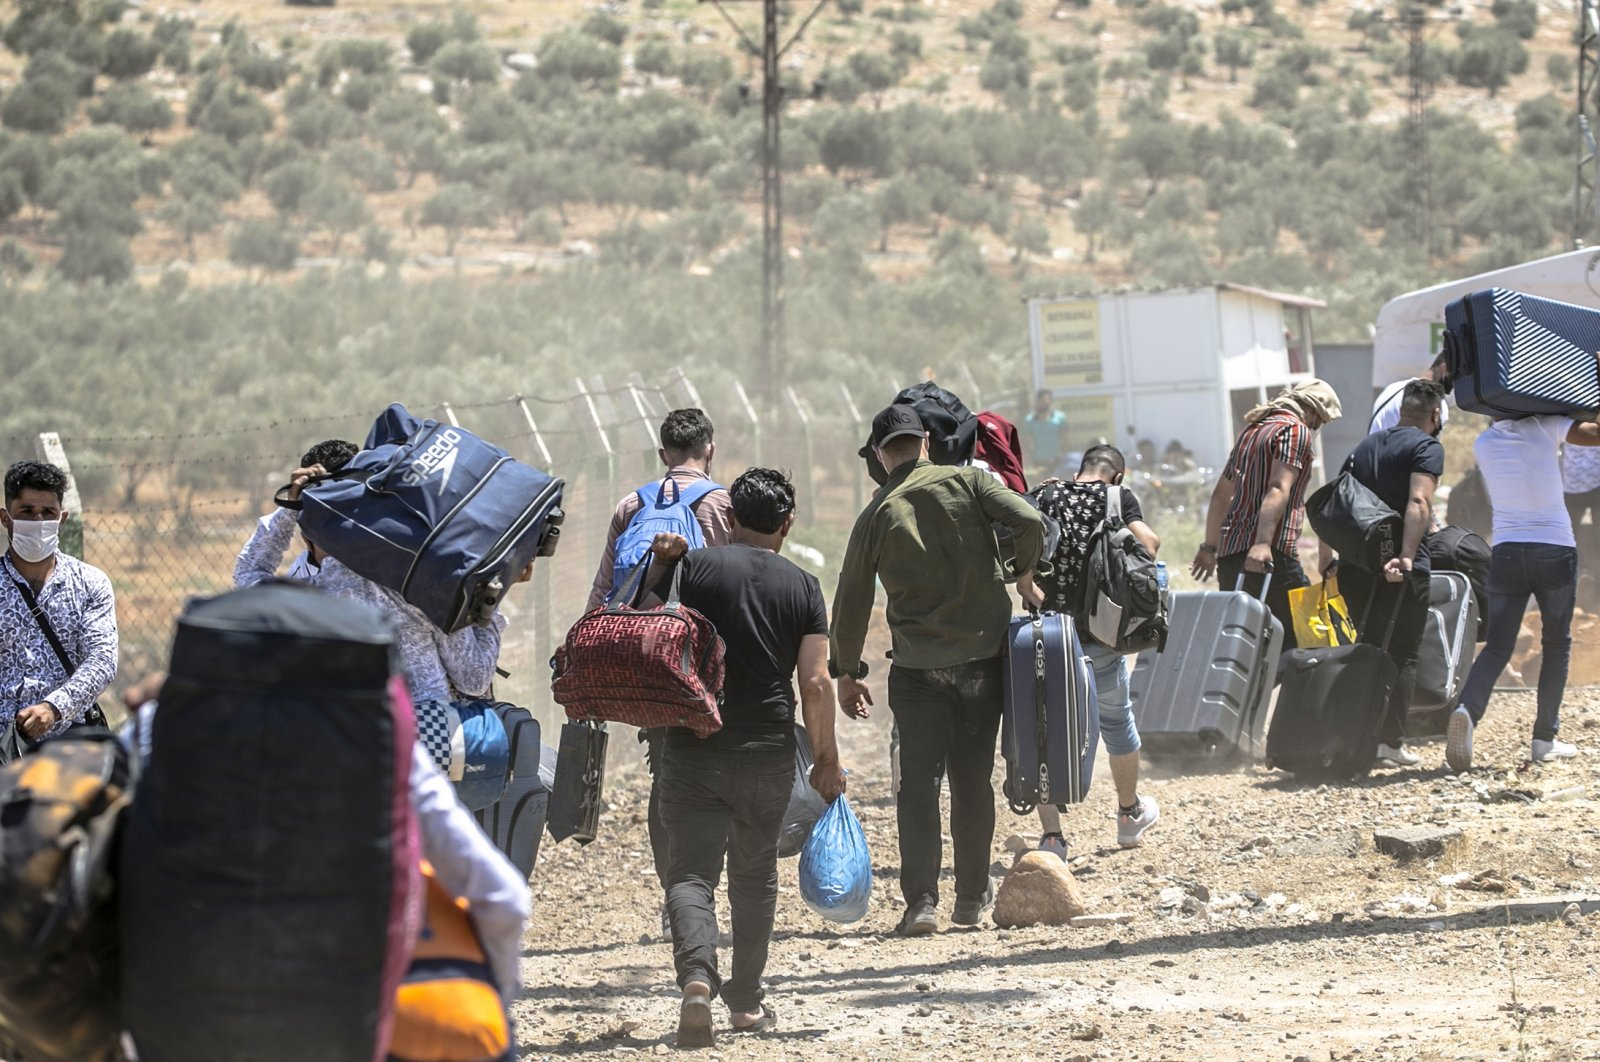 Syrians Living in Turkey go to Syria for Bittersweet Holidays